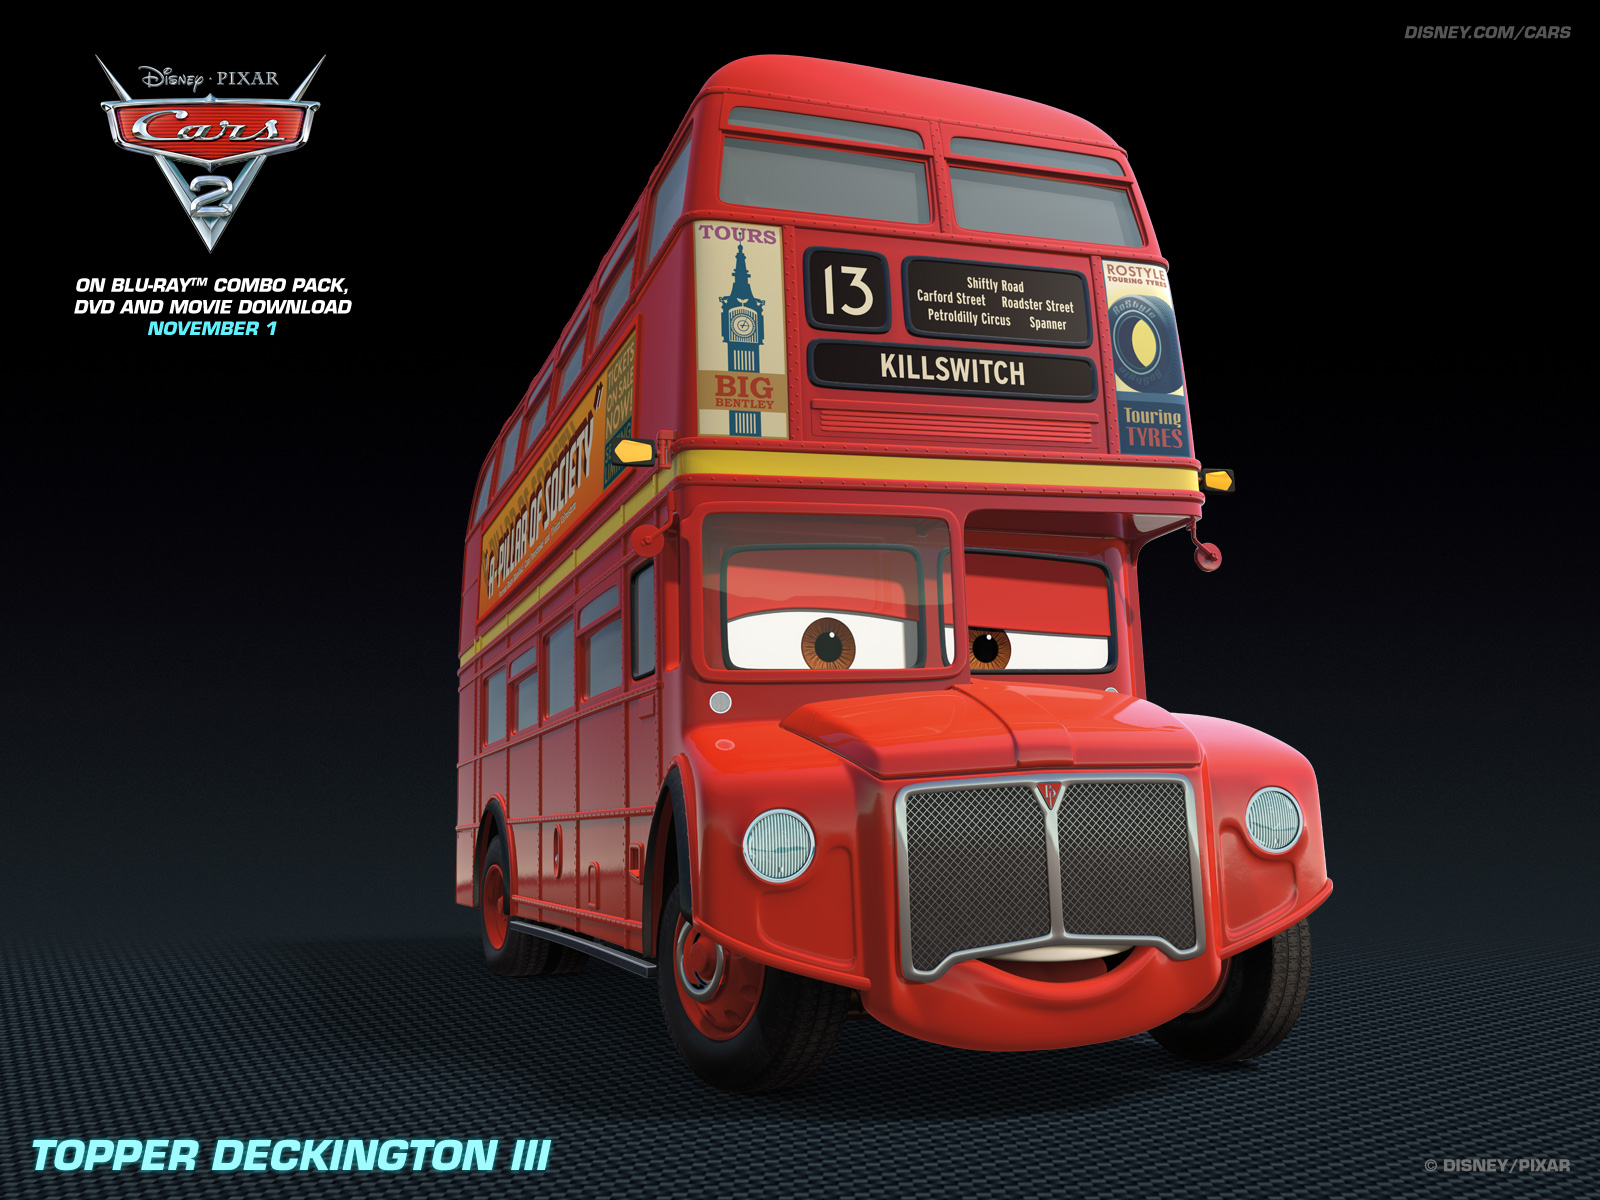 fanpopcomTopper Deckington   Disney Pixar Cars 2 Wallpaper 28400548 1600x1200